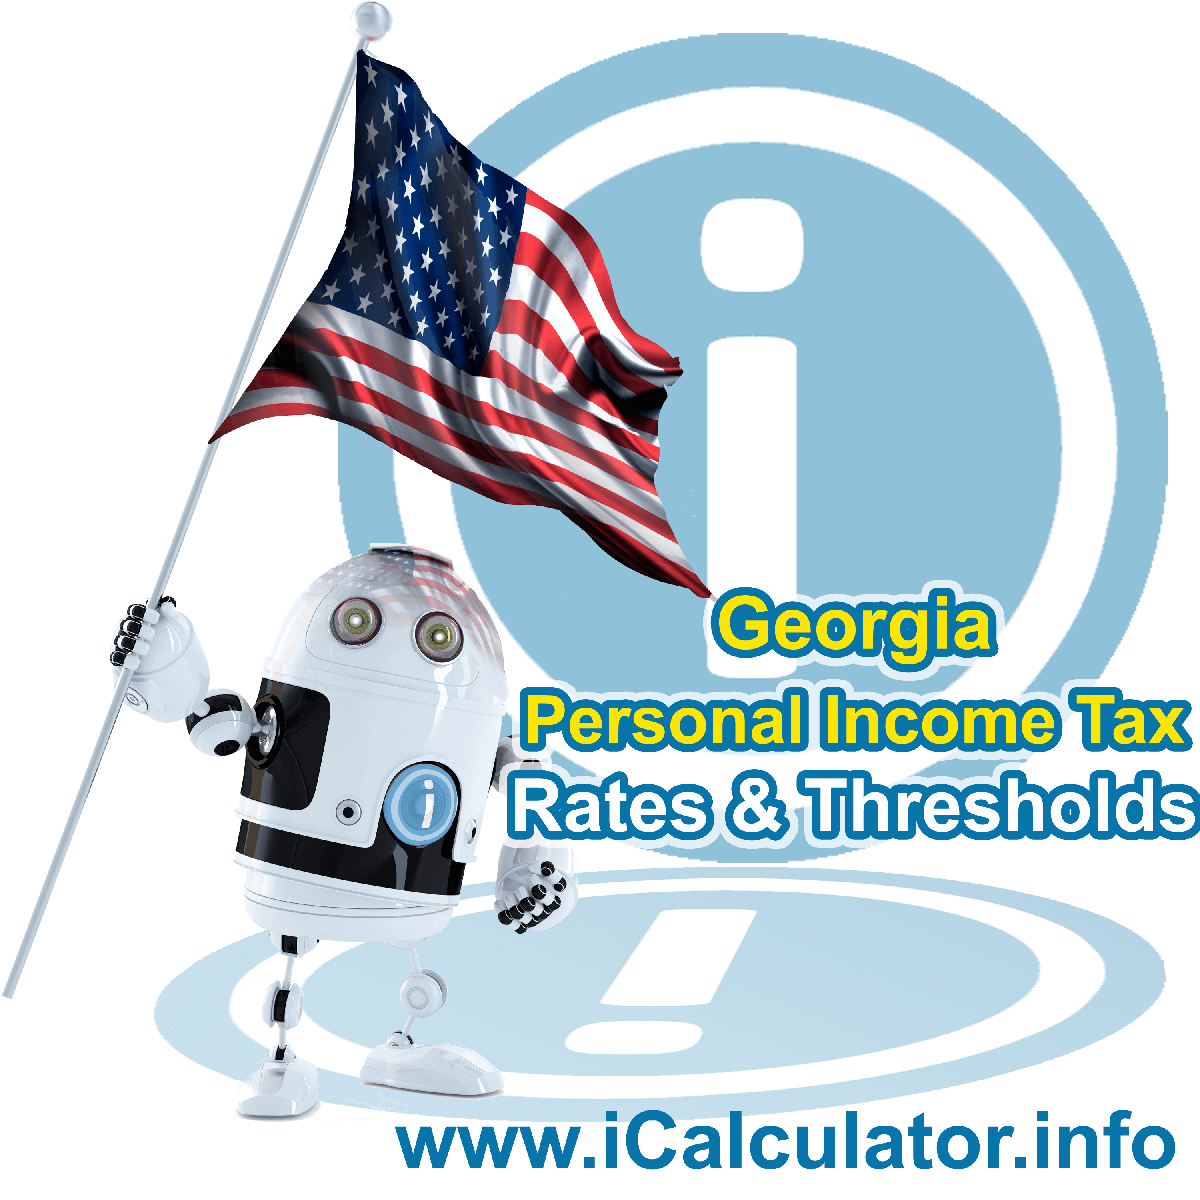 Georgia State Tax Tables 2019. This image displays details of the Georgia State Tax Tables for the 2019 tax return year which is provided in support of the 2019 US Tax Calculator